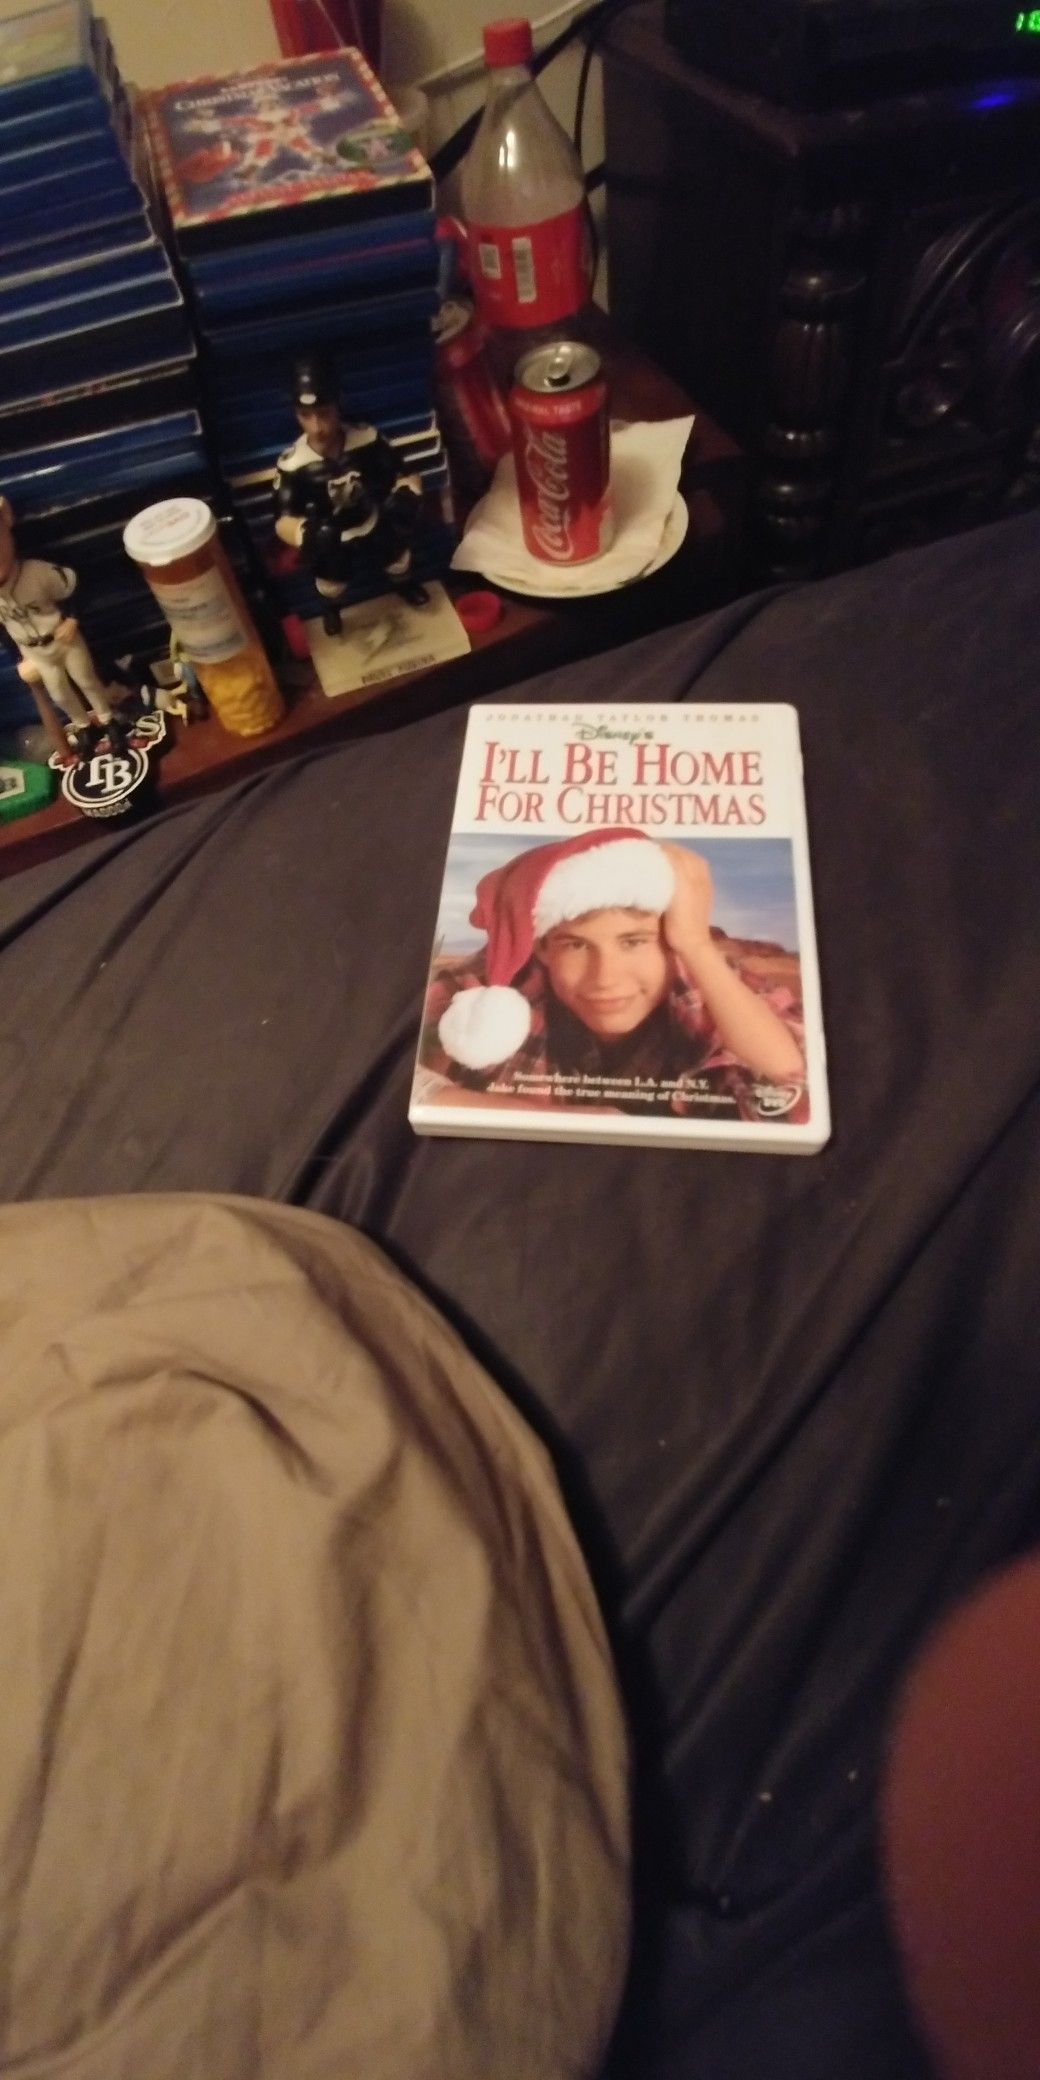 Ill Be Home For Christmas Dvd.Disney S I Ll Be Home For Christmas On Dvd From The Disney